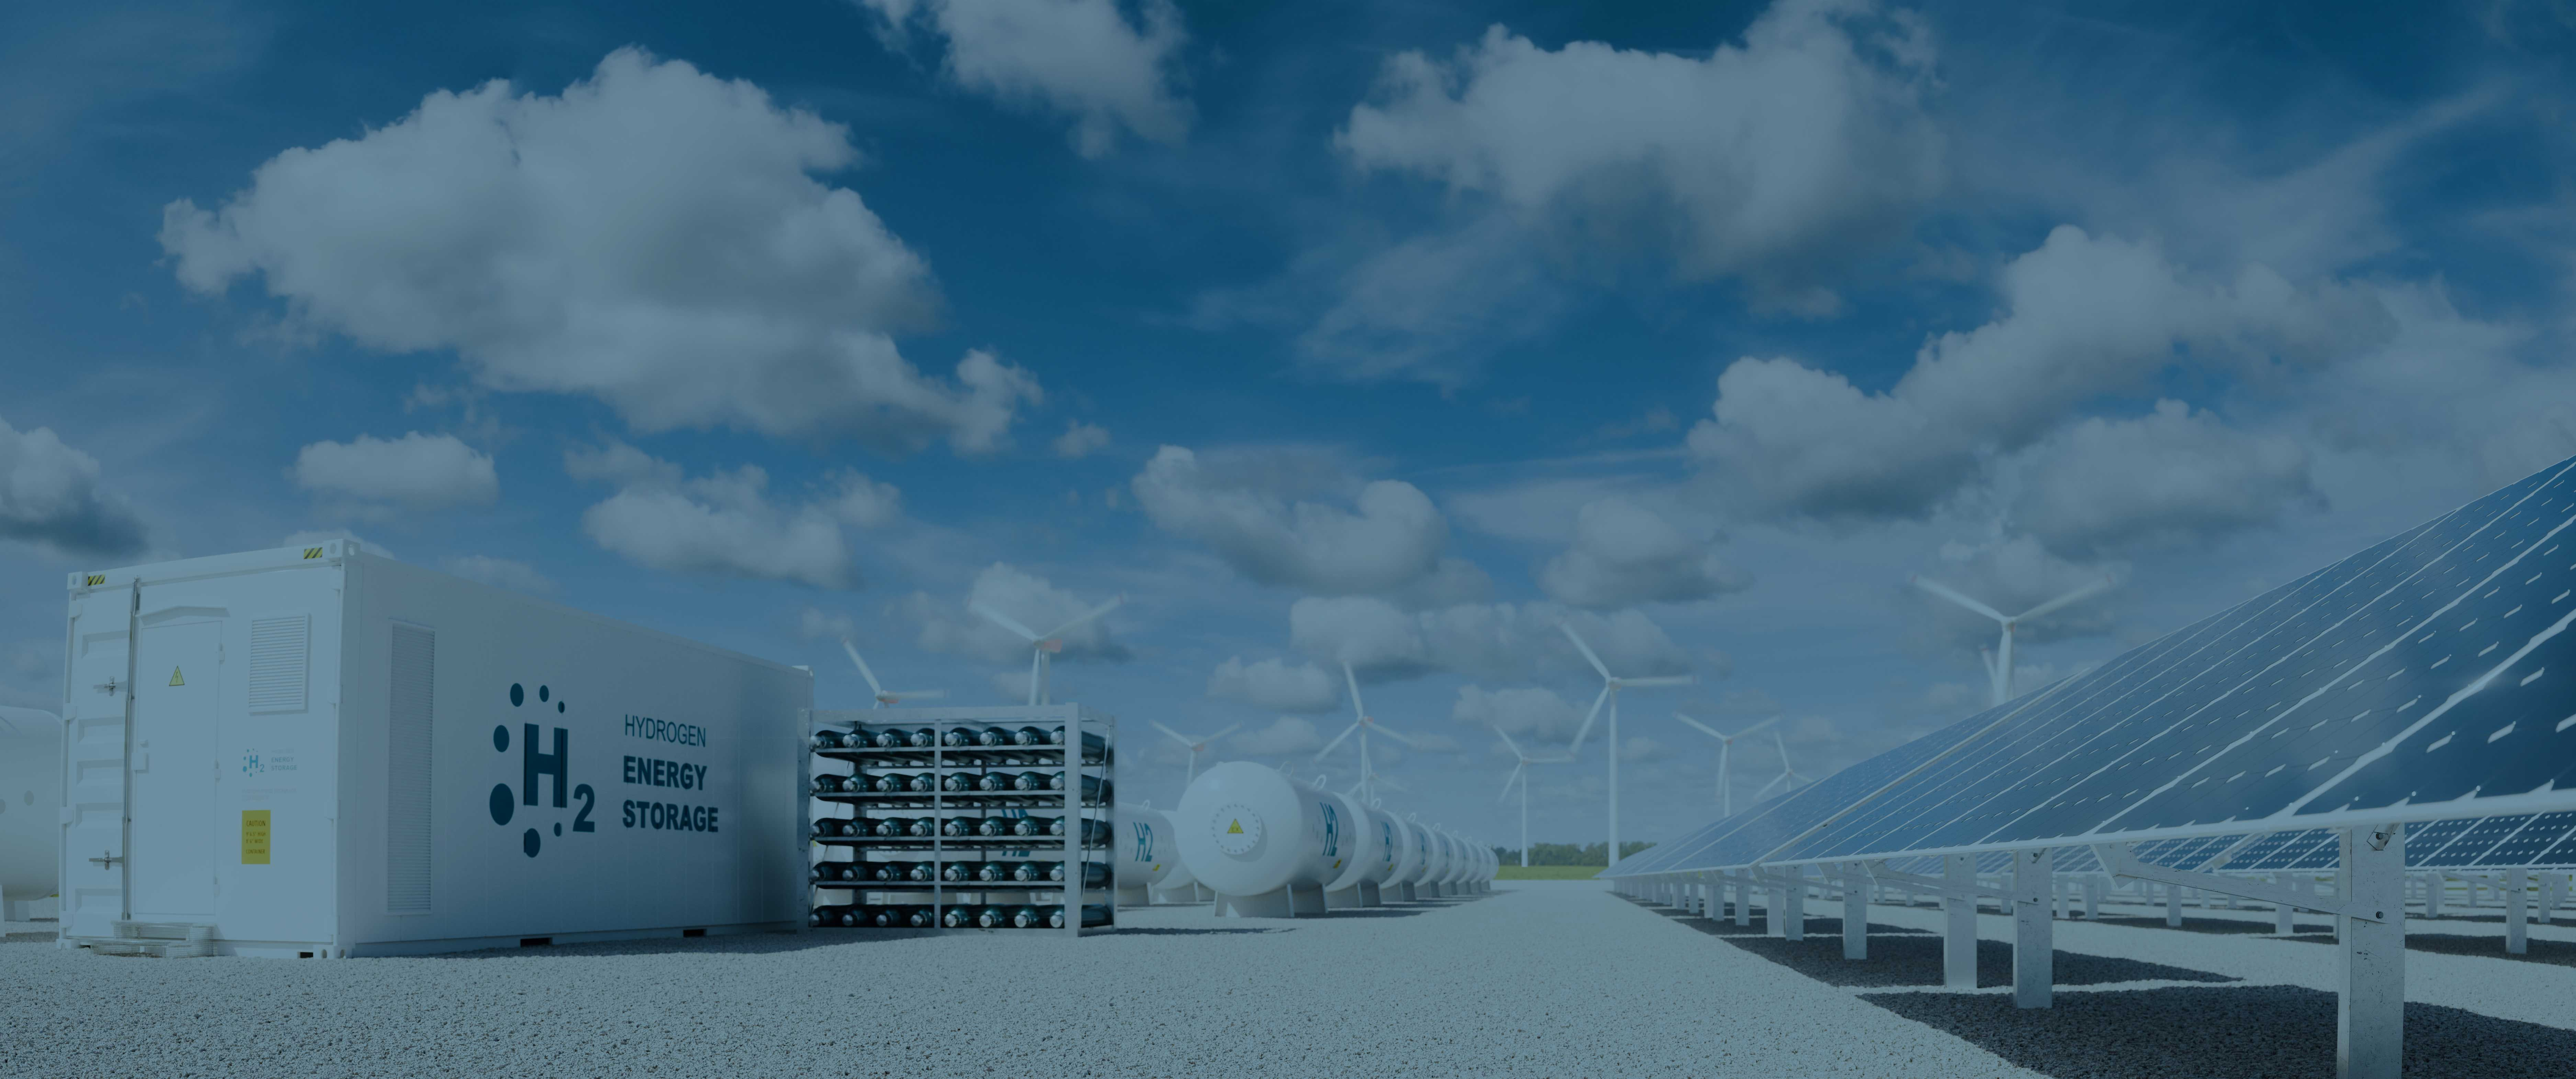 Technologies & Solutions For a Low-Carbon Hydrogen Future